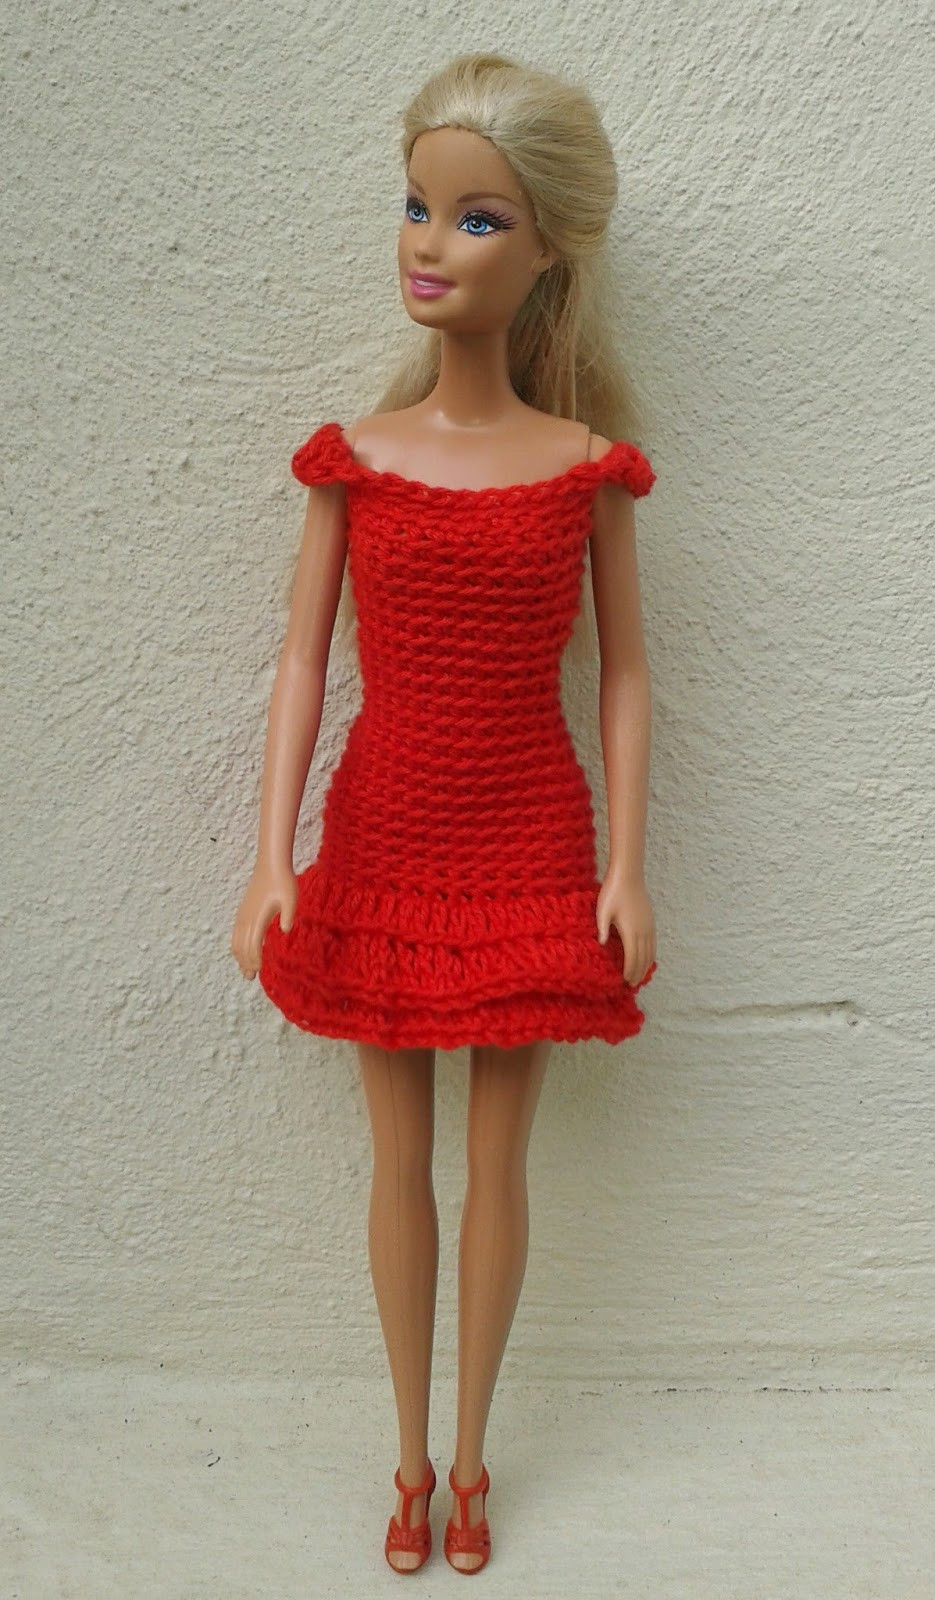 Crochet Dresses Awesome Linmary Knits Barbie In Red Crochet Dresses Of Top 49 Pictures Crochet Dresses